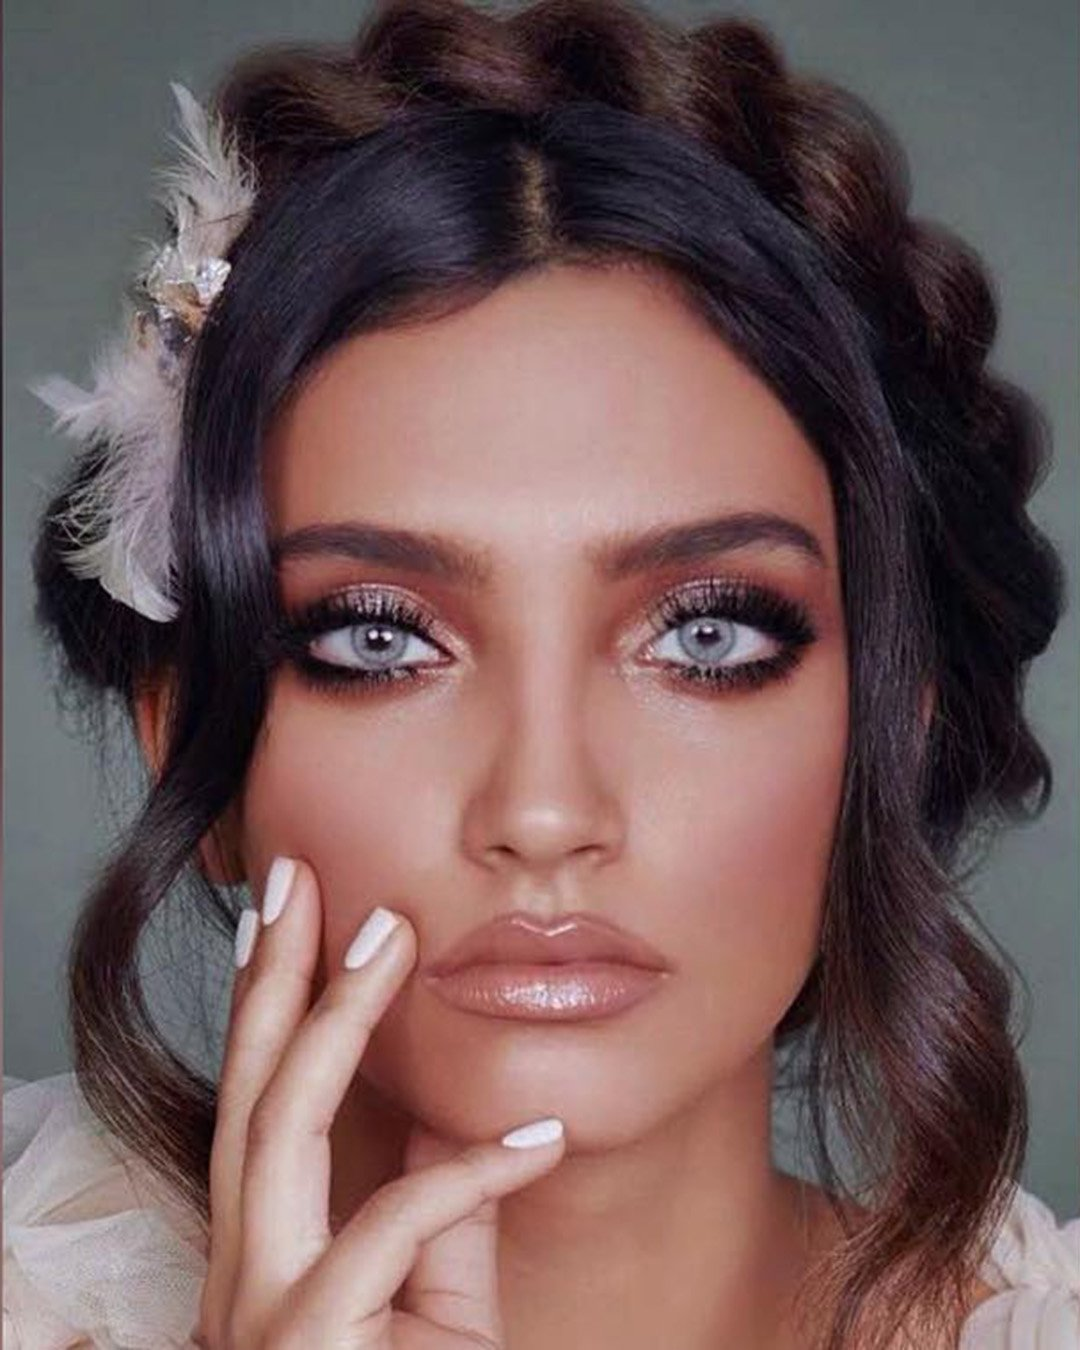 boho wedding makeup smokey eyes nude gloss lips osnatshohatmakeup